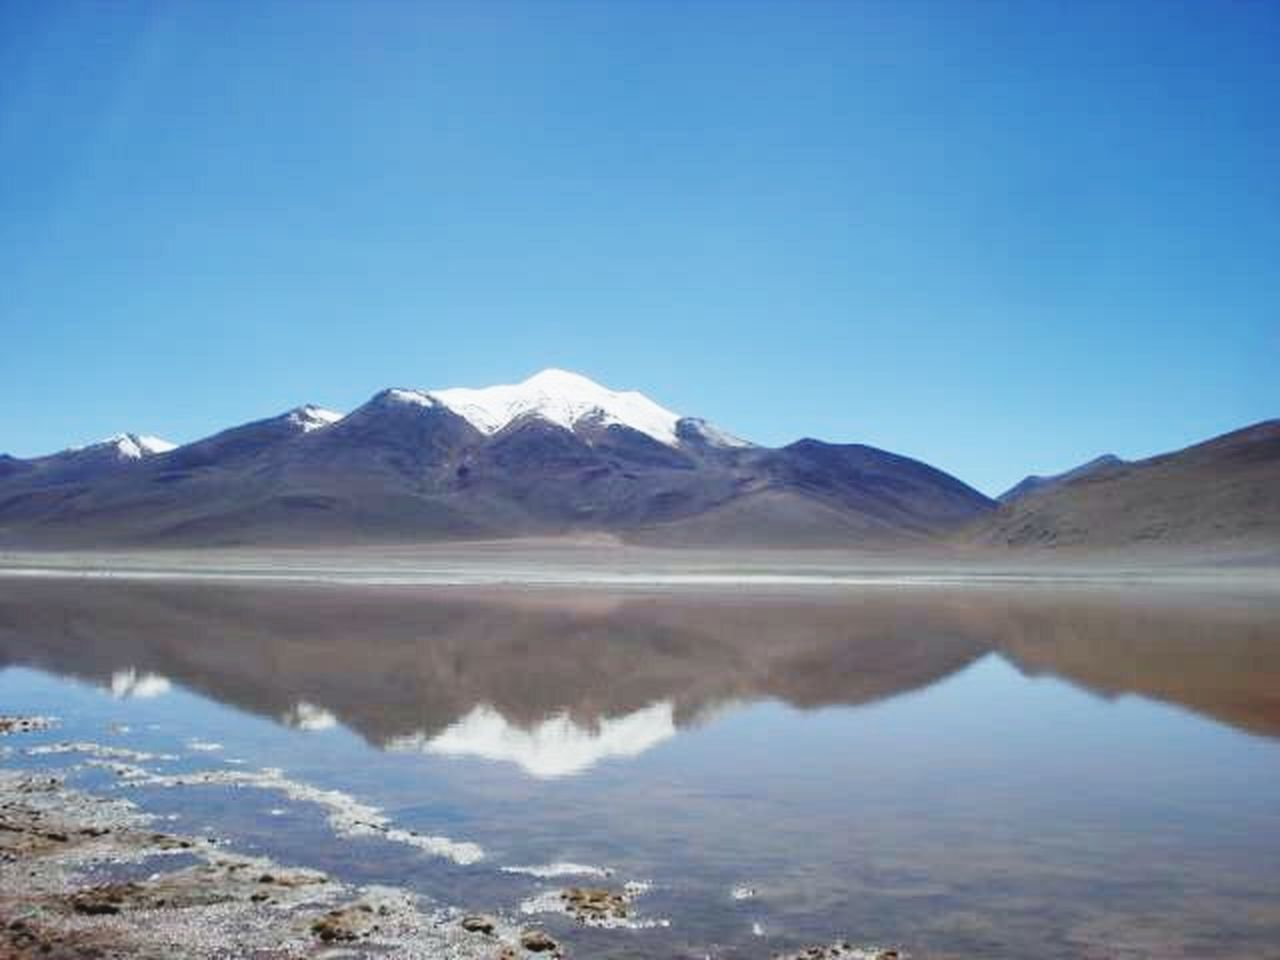 mountain, reflection, lake, scenics, nature, outdoors, landscape, blue, snow, day, mountain range, purity, beauty in nature, no people, clear sky, tranquility, the natural world, sky, water, salt flat, snowcapped mountain, salt - mineral